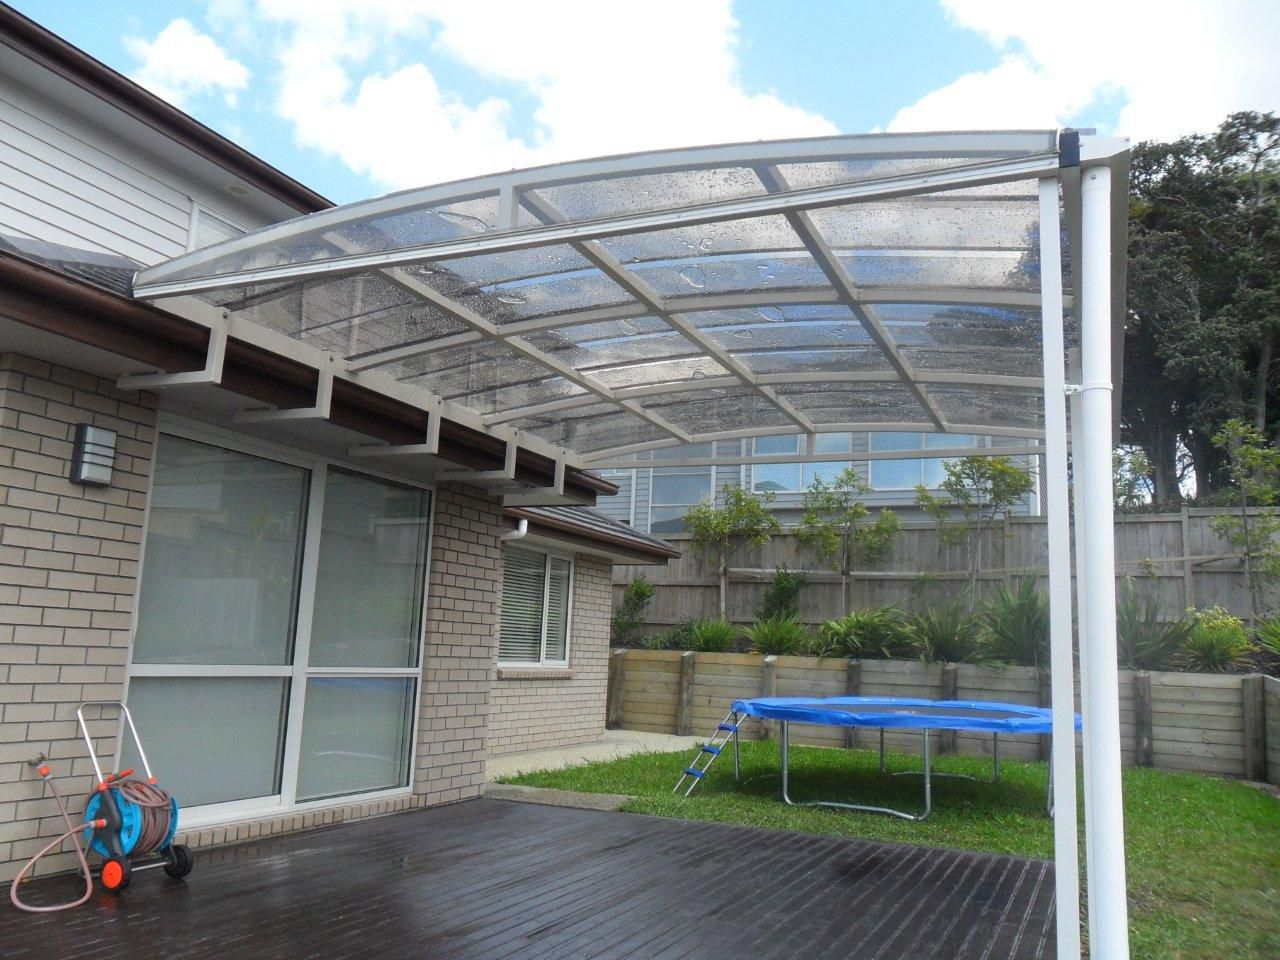 ... Patio canopy / polycarbonate / methacrylate / metal Polimer Tecnic ... & Patio canopy / polycarbonate / methacrylate / metal - Polimer Tecnic